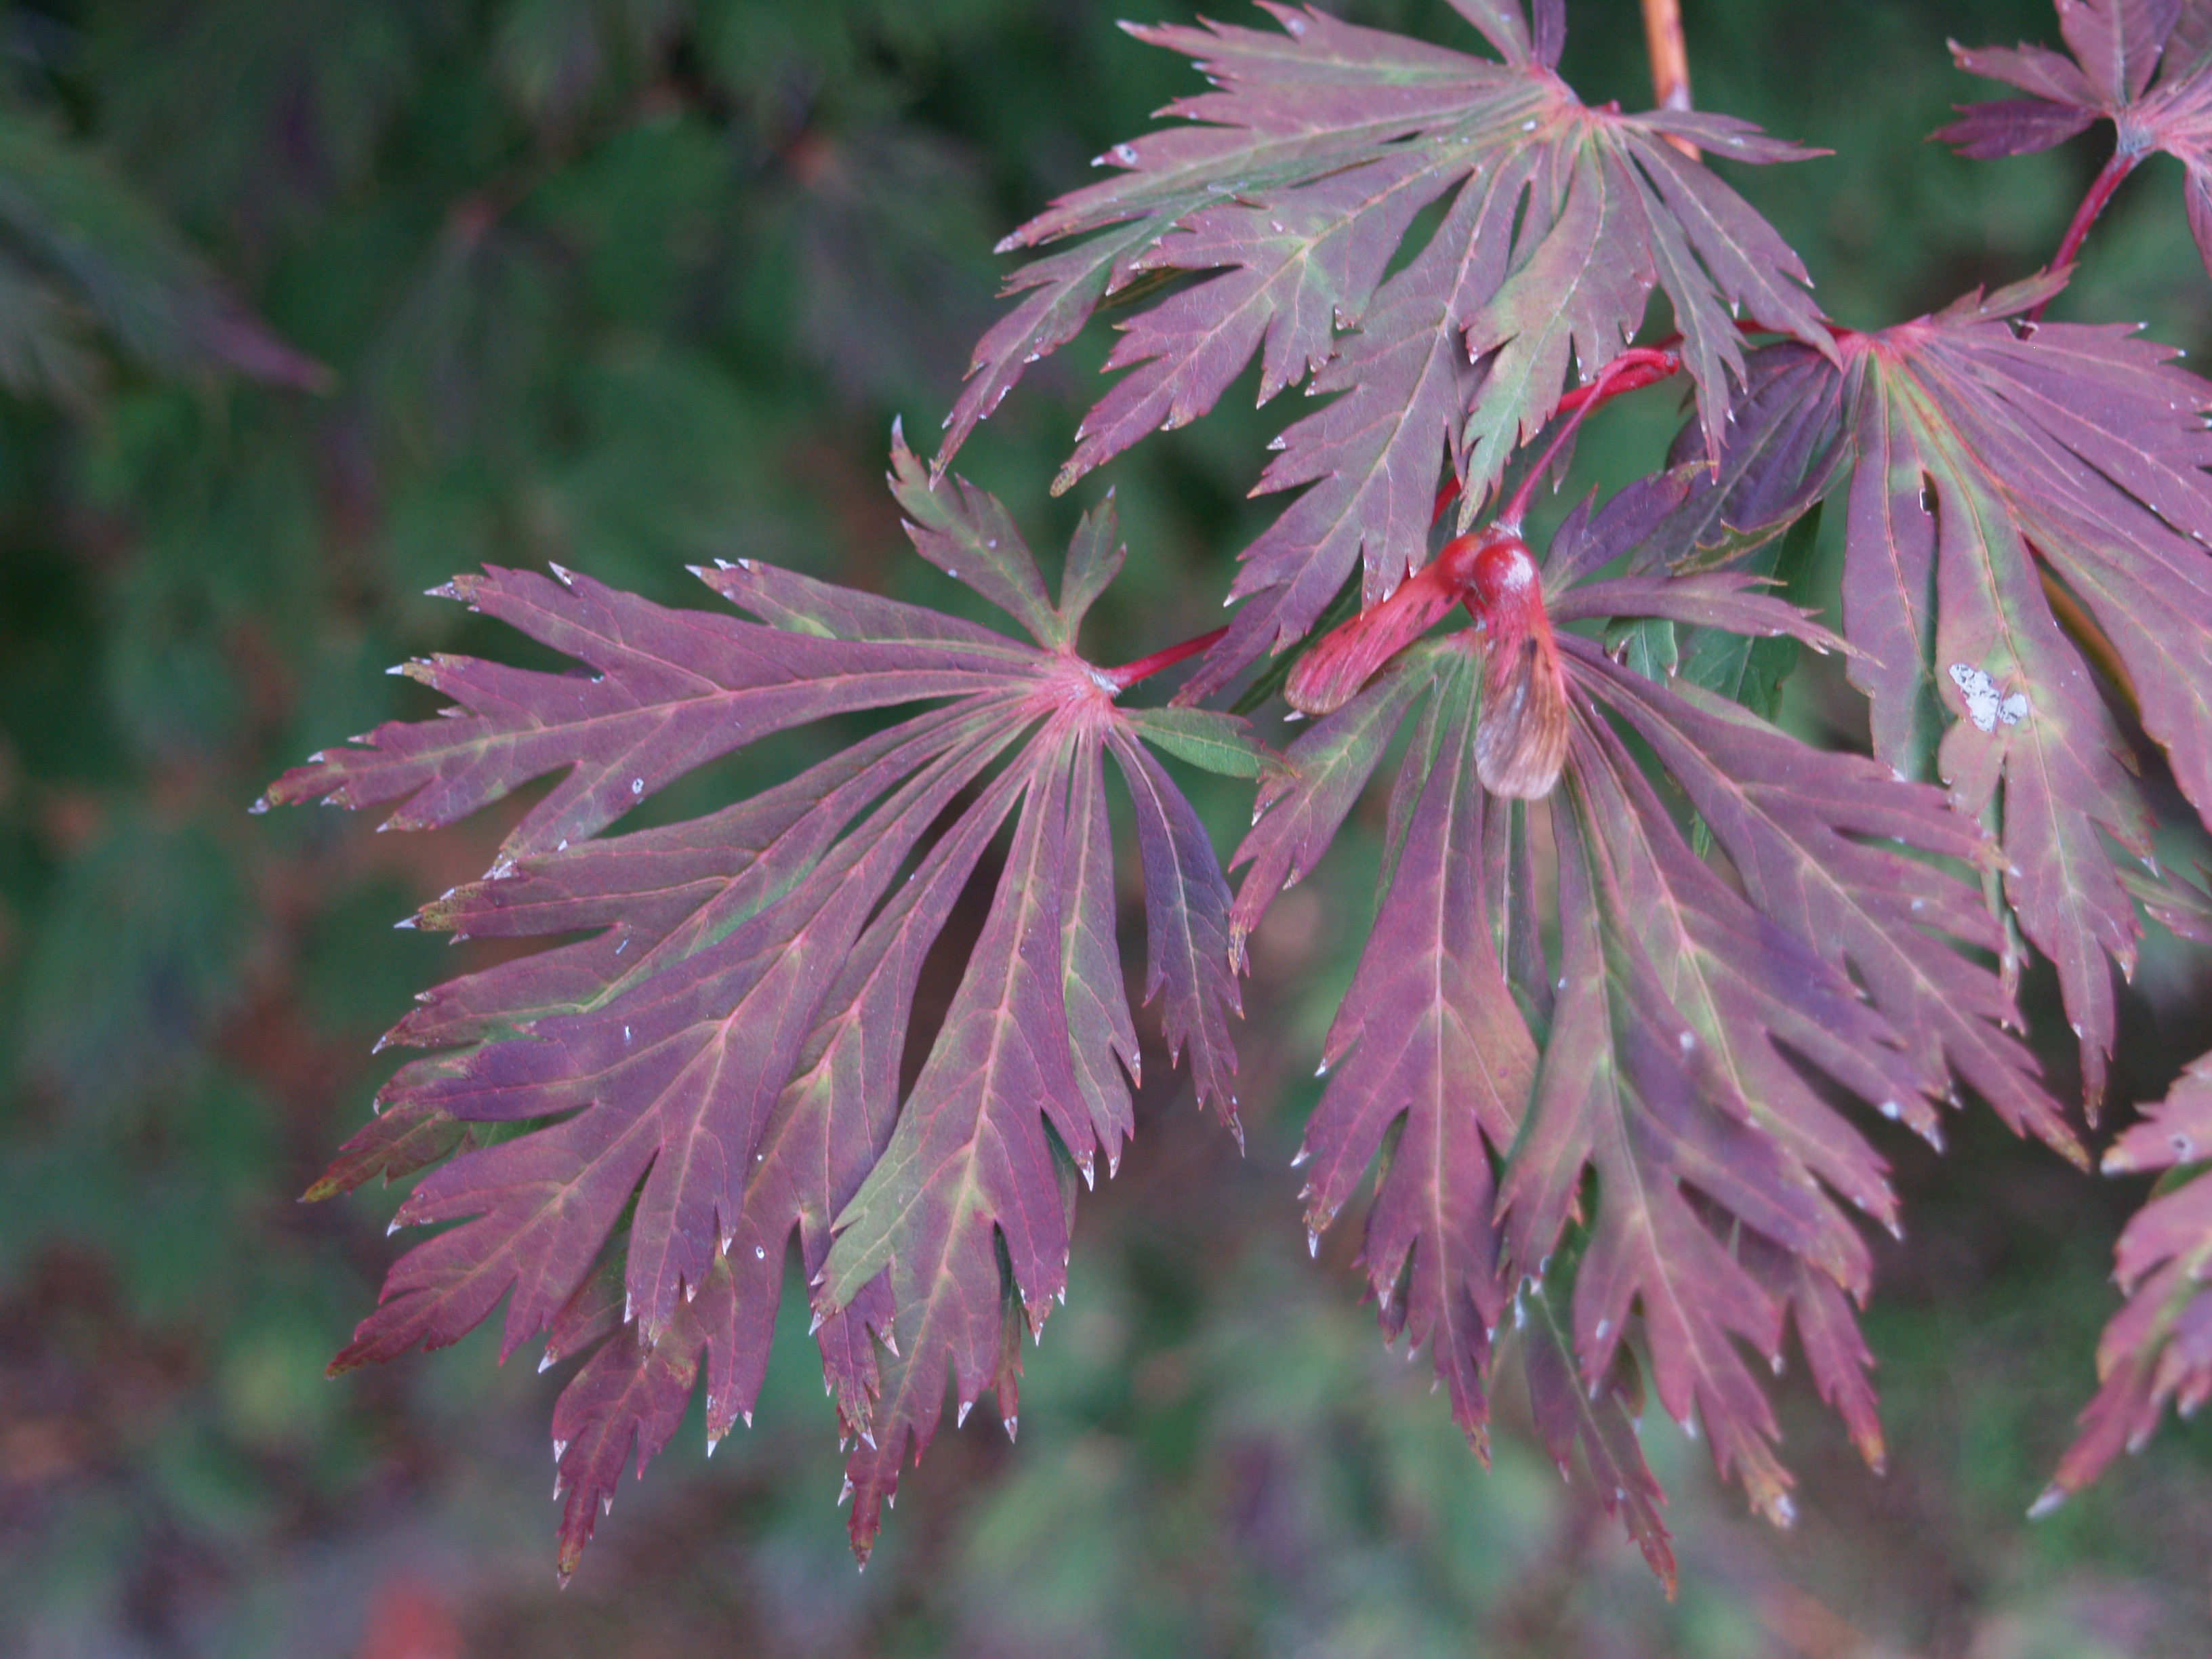 How to care for a fern leaf japanese maple - If